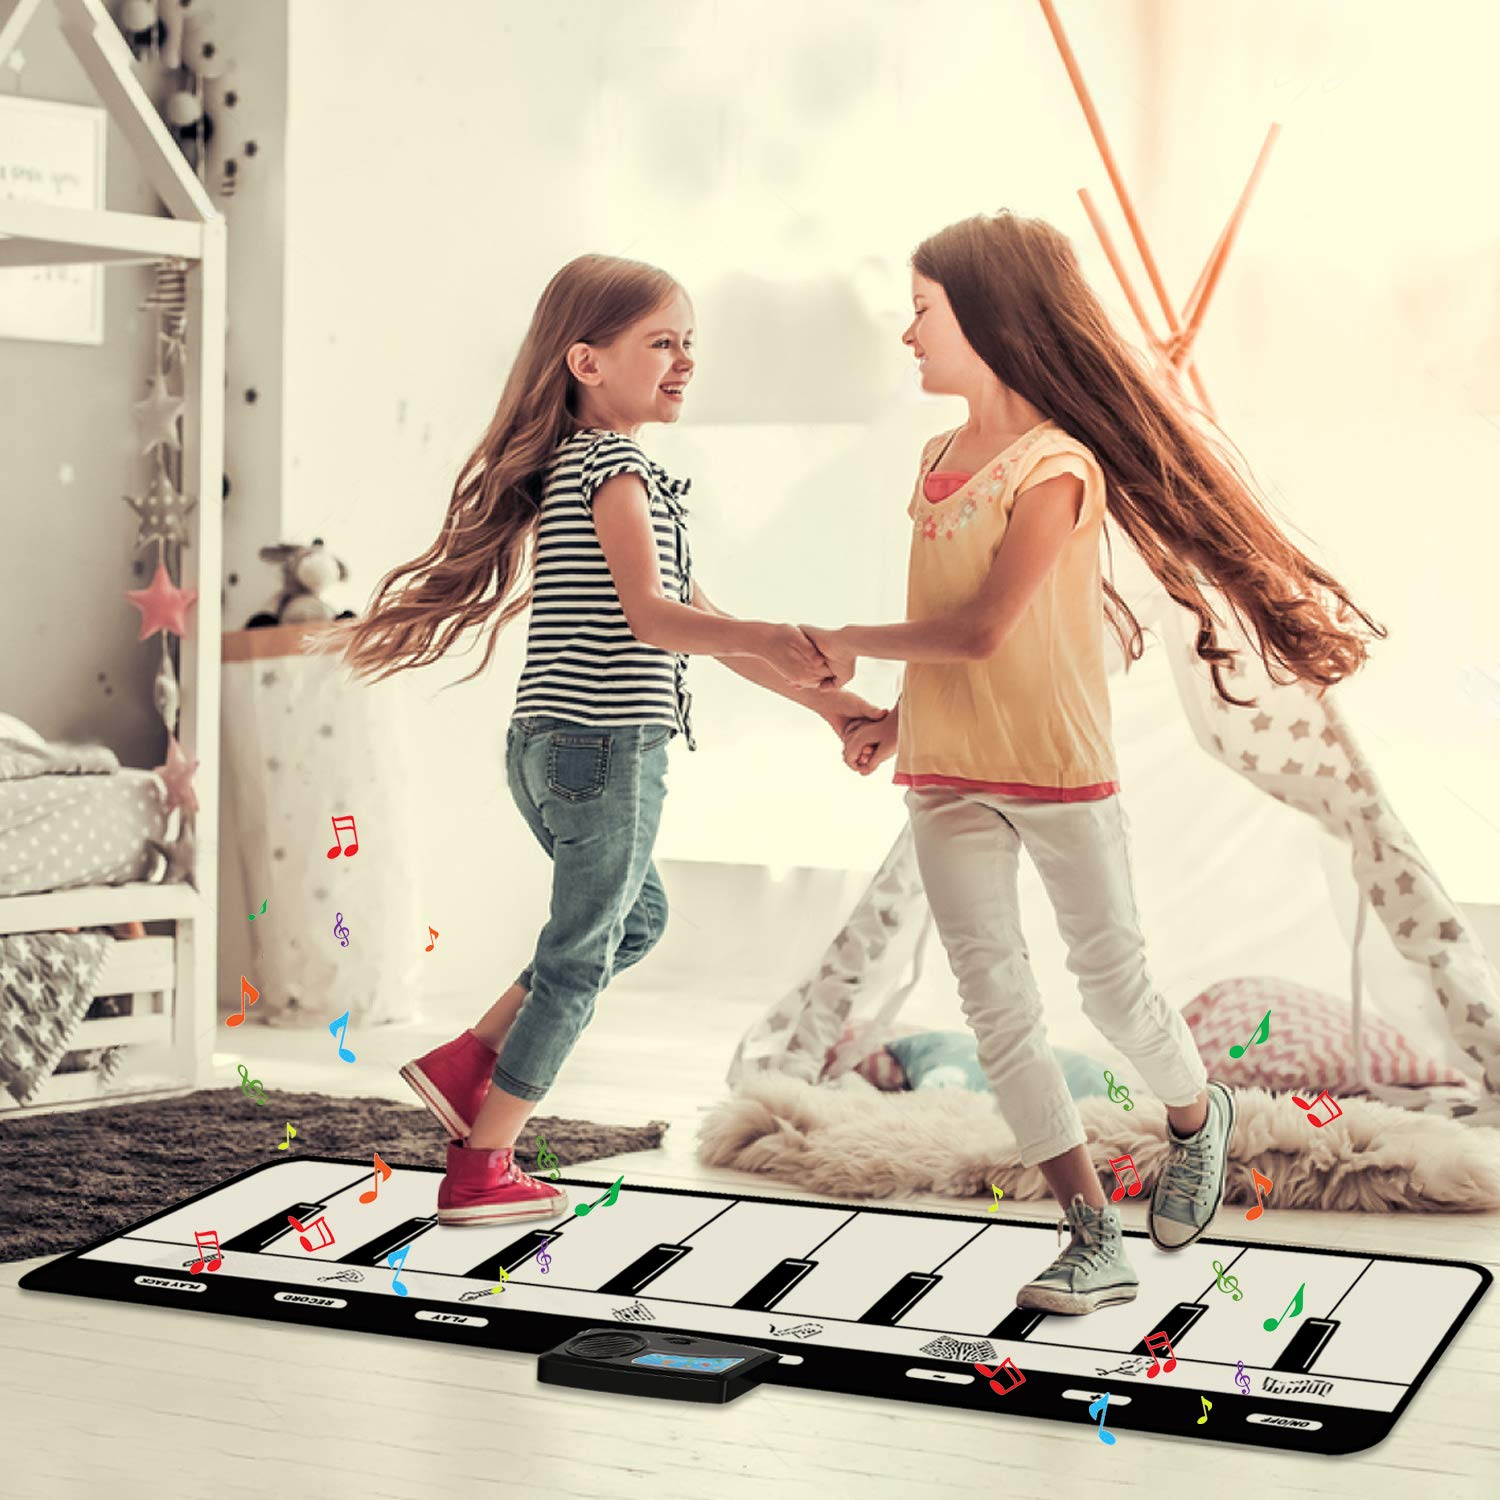 Kids Piano Mat, Keyboard Play Mat, Floor Piano Mat for Kids, Musical Piano Mat has 8 Musical Instruments, Record, Playback, Demo, Play, Best Birthday Christmas Day Gifts for Girls, Boys,Children by M SANMERSEN (Image #5)